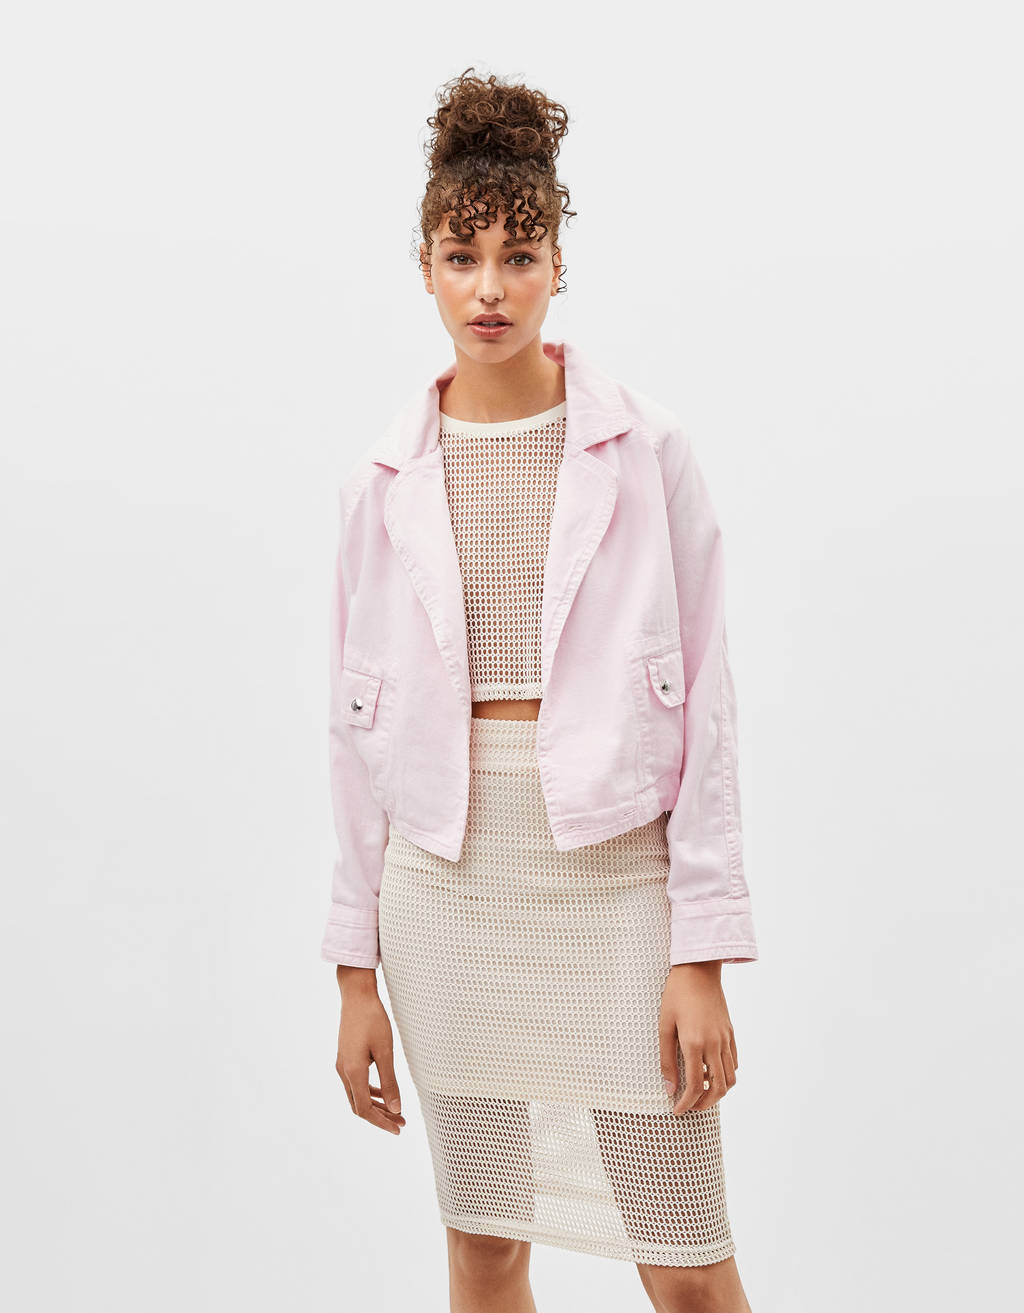 82a3a0634764 New In for Women - Spring Summer 2019